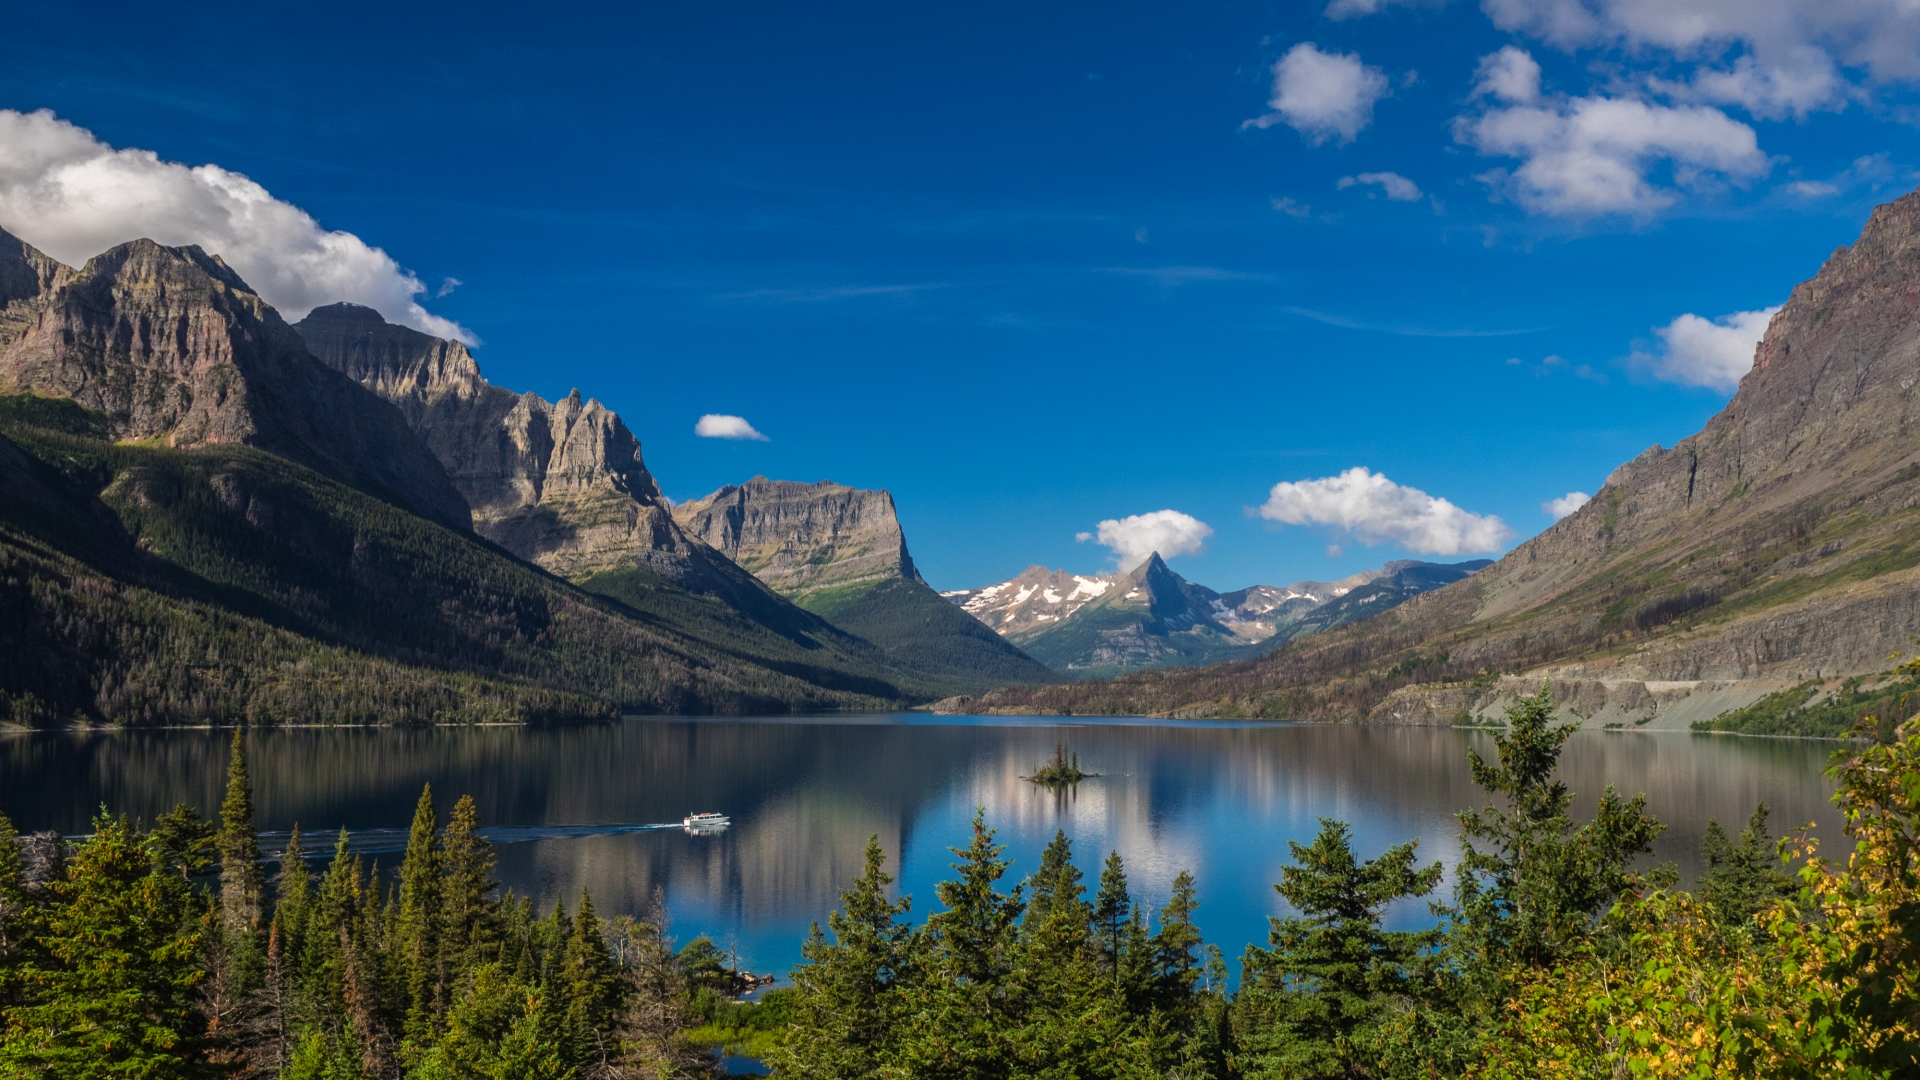 A morning view of Wild Goose Island in Saint Mary Lake, Glacier National Park, MT.